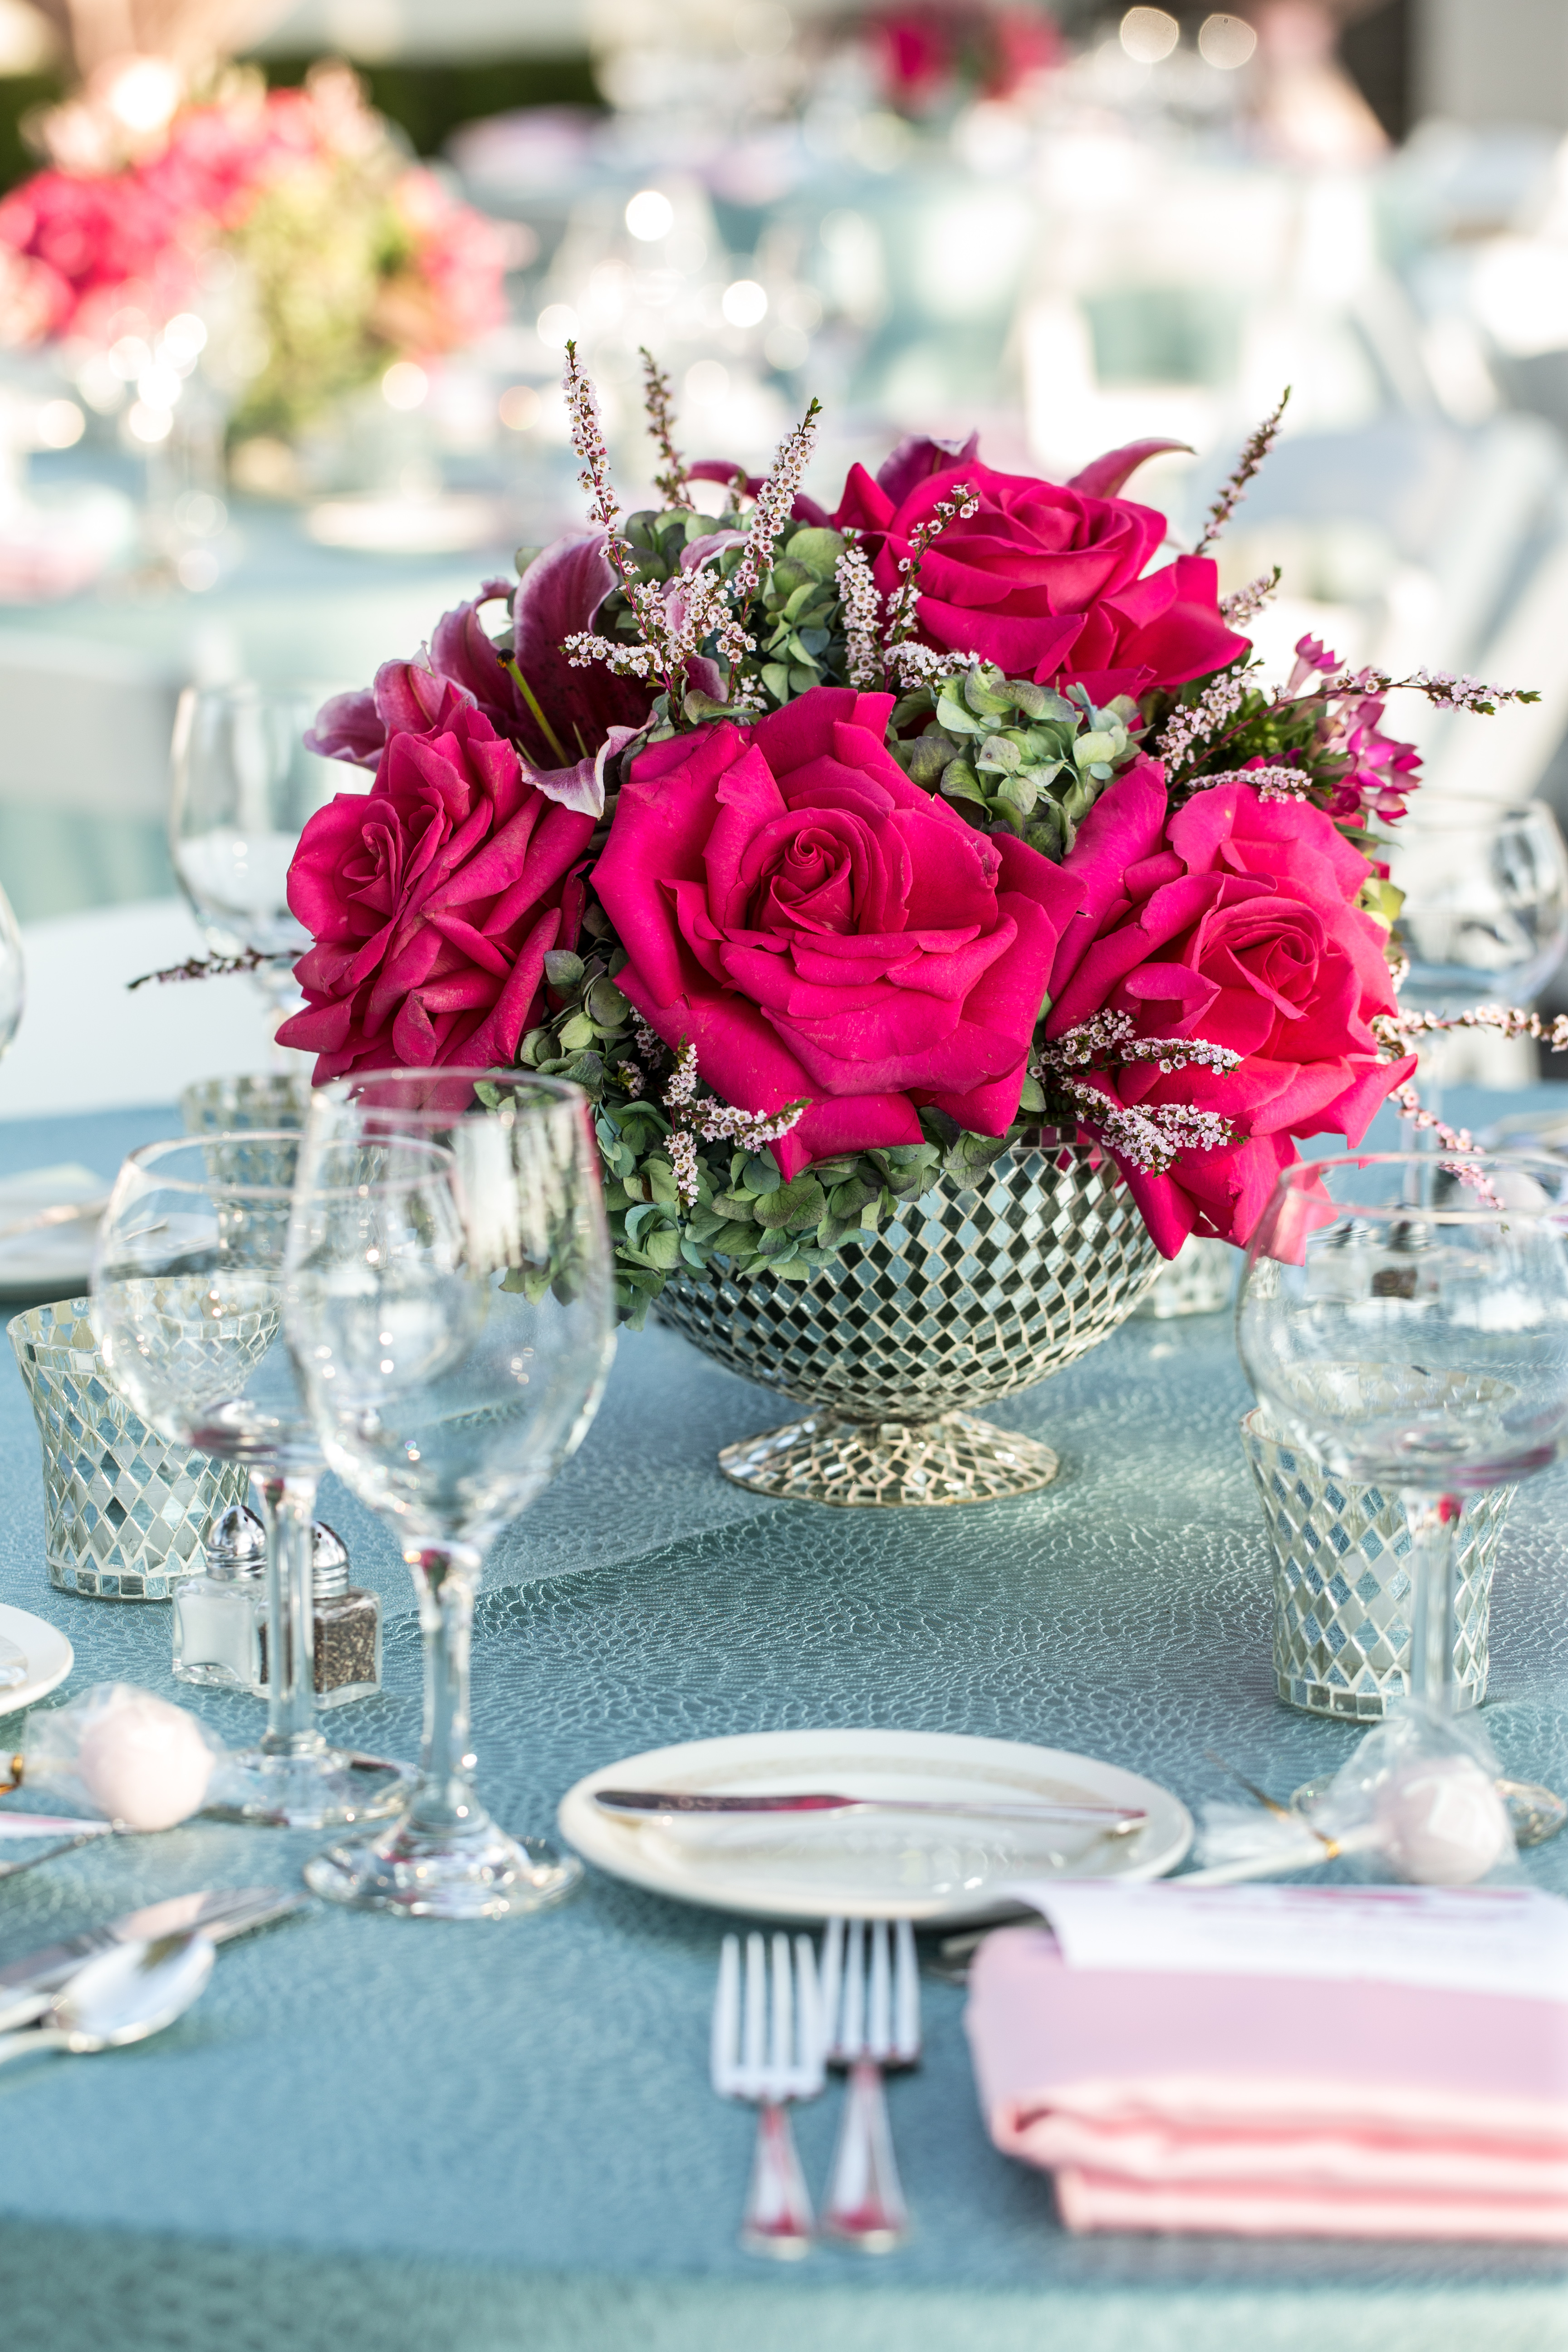 An Extra Special Summer Soirée - Andre LaCour Photography